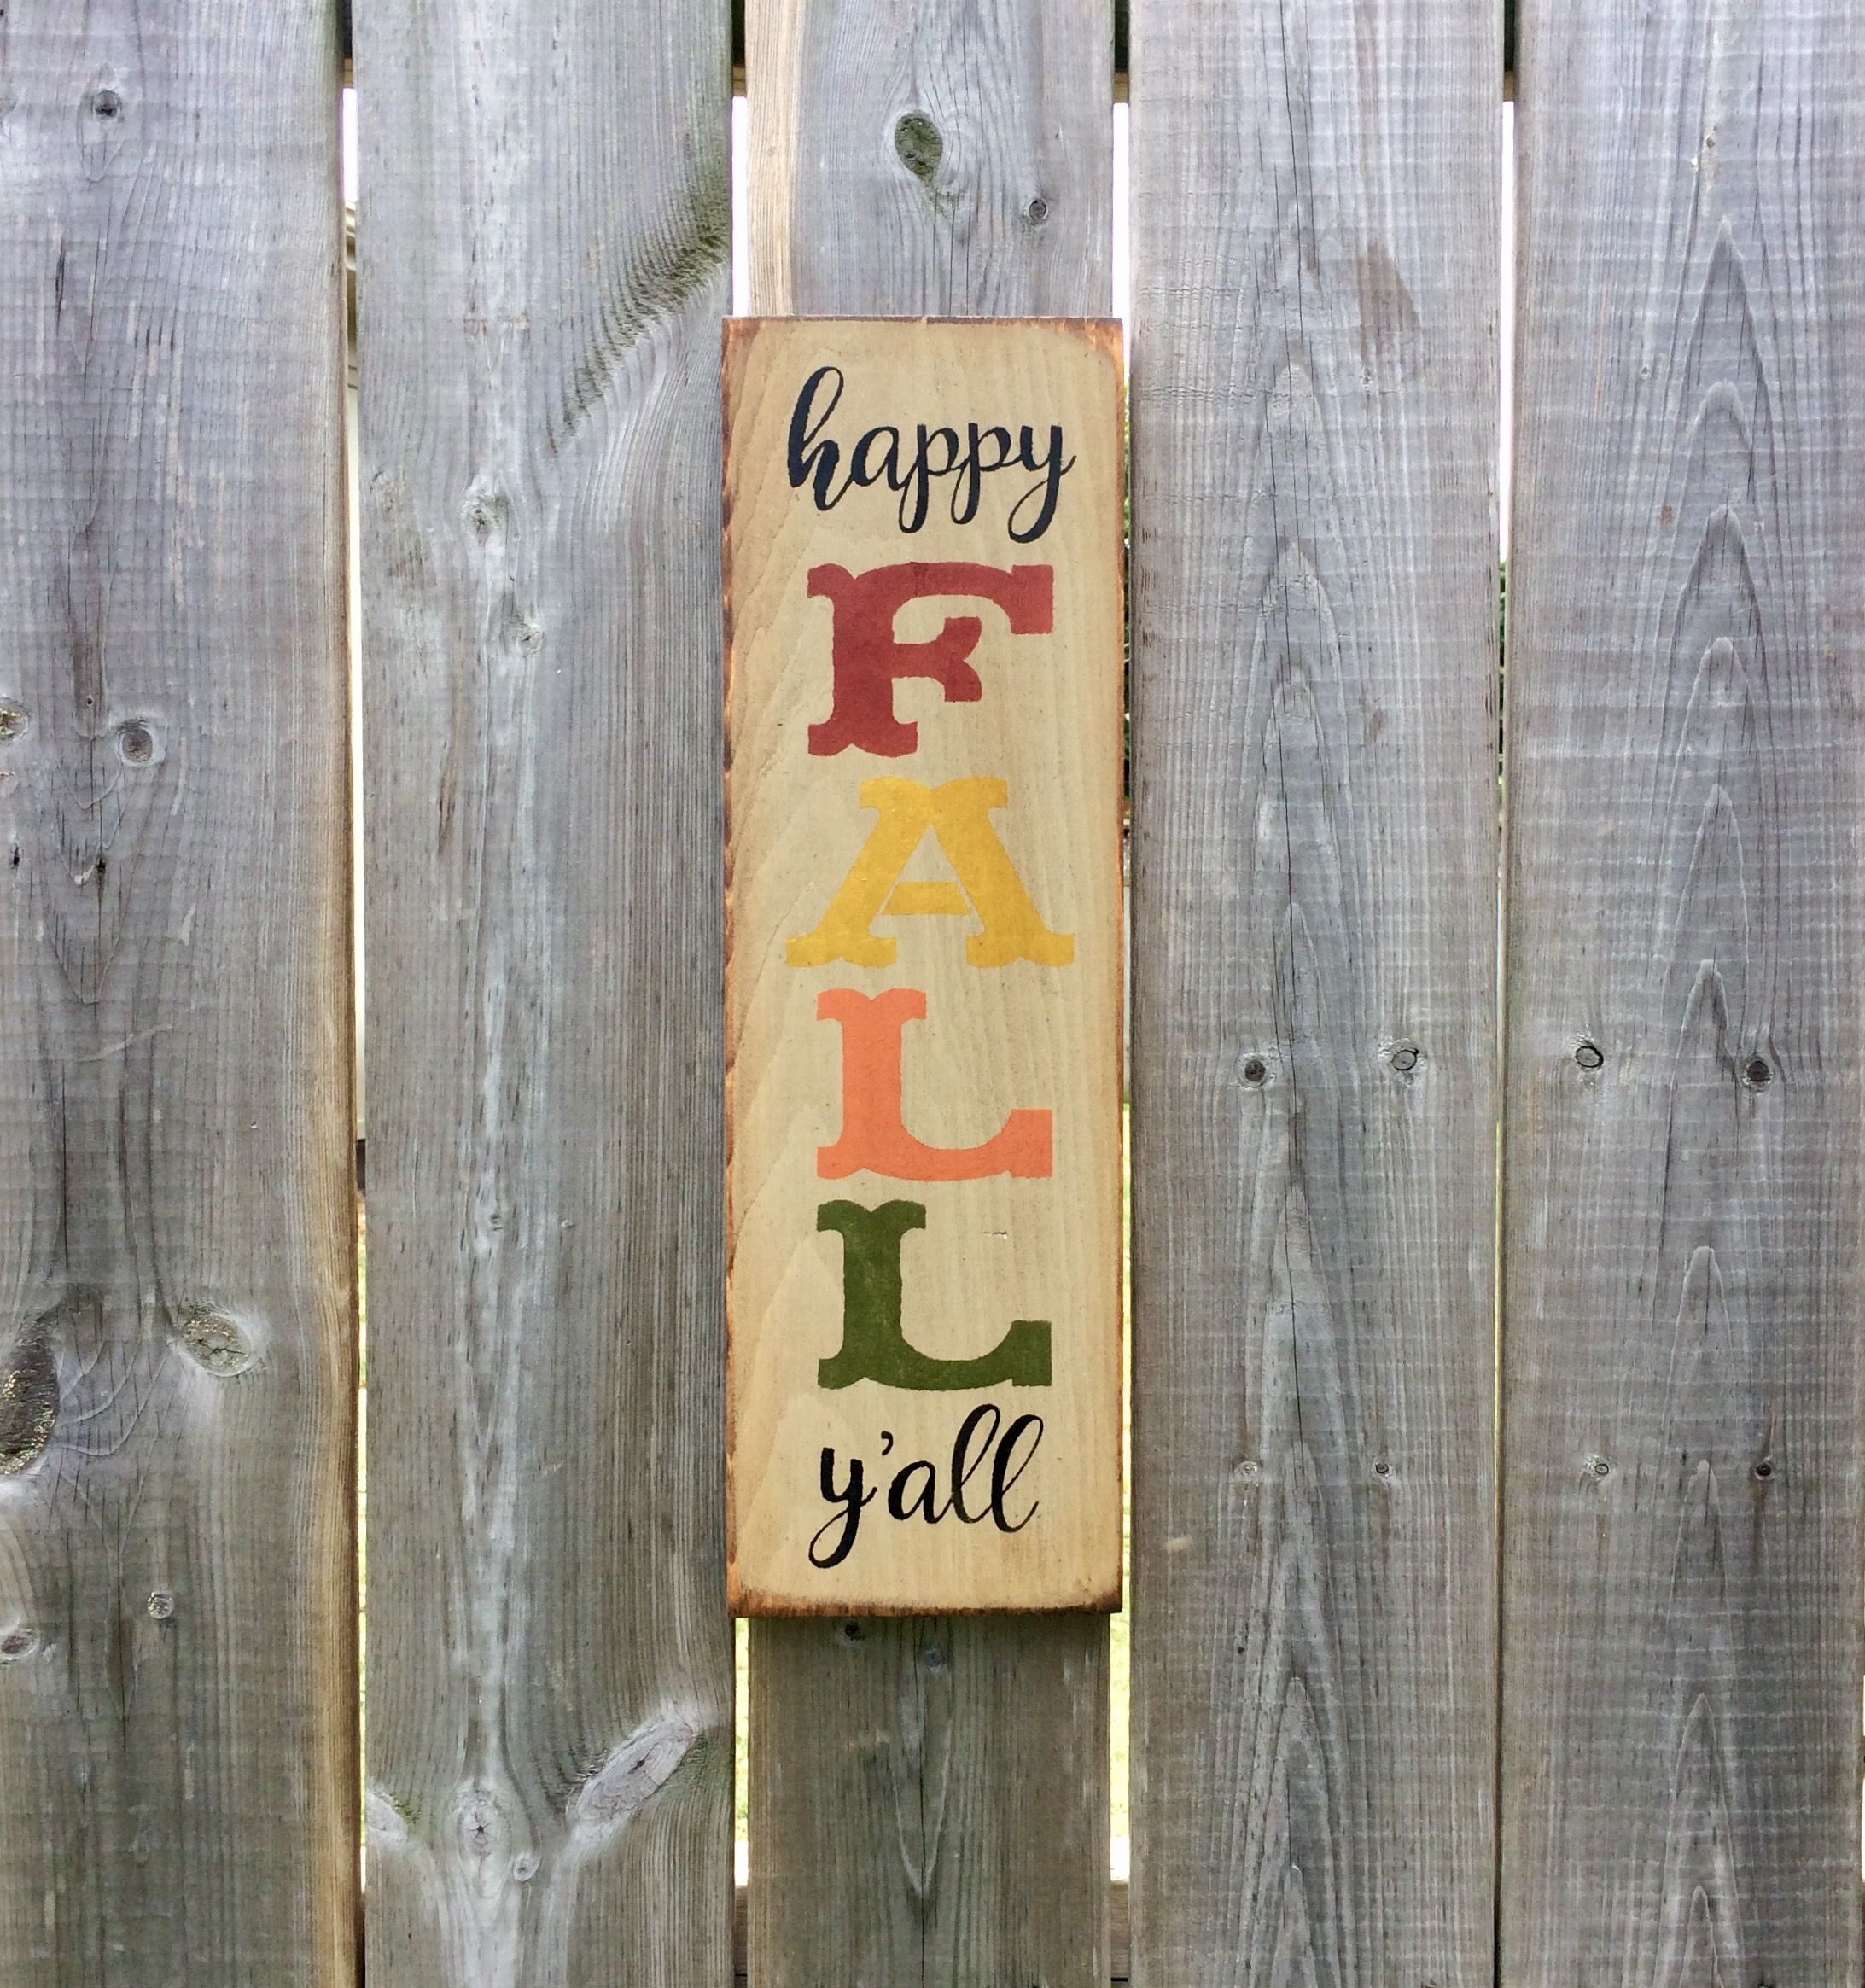 Happy fall yaall made by the primitive shed st catharines the happy fall yaall made by the primitive shed st catharines solutioingenieria Gallery